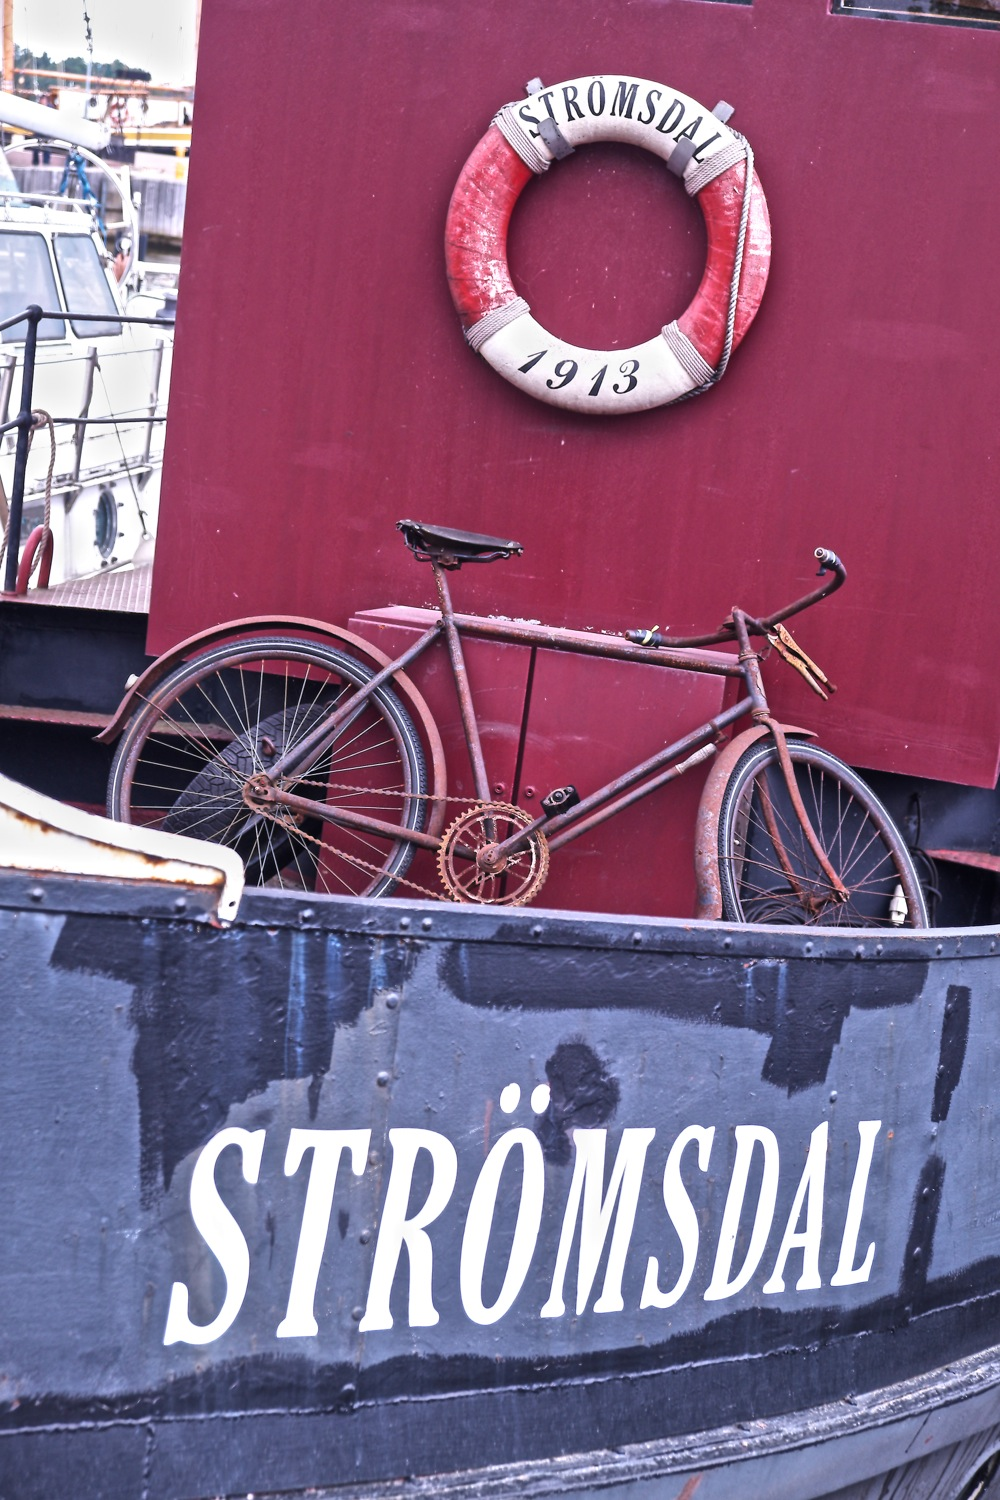 Bicycle on board the Stromsdal at Helsinki city